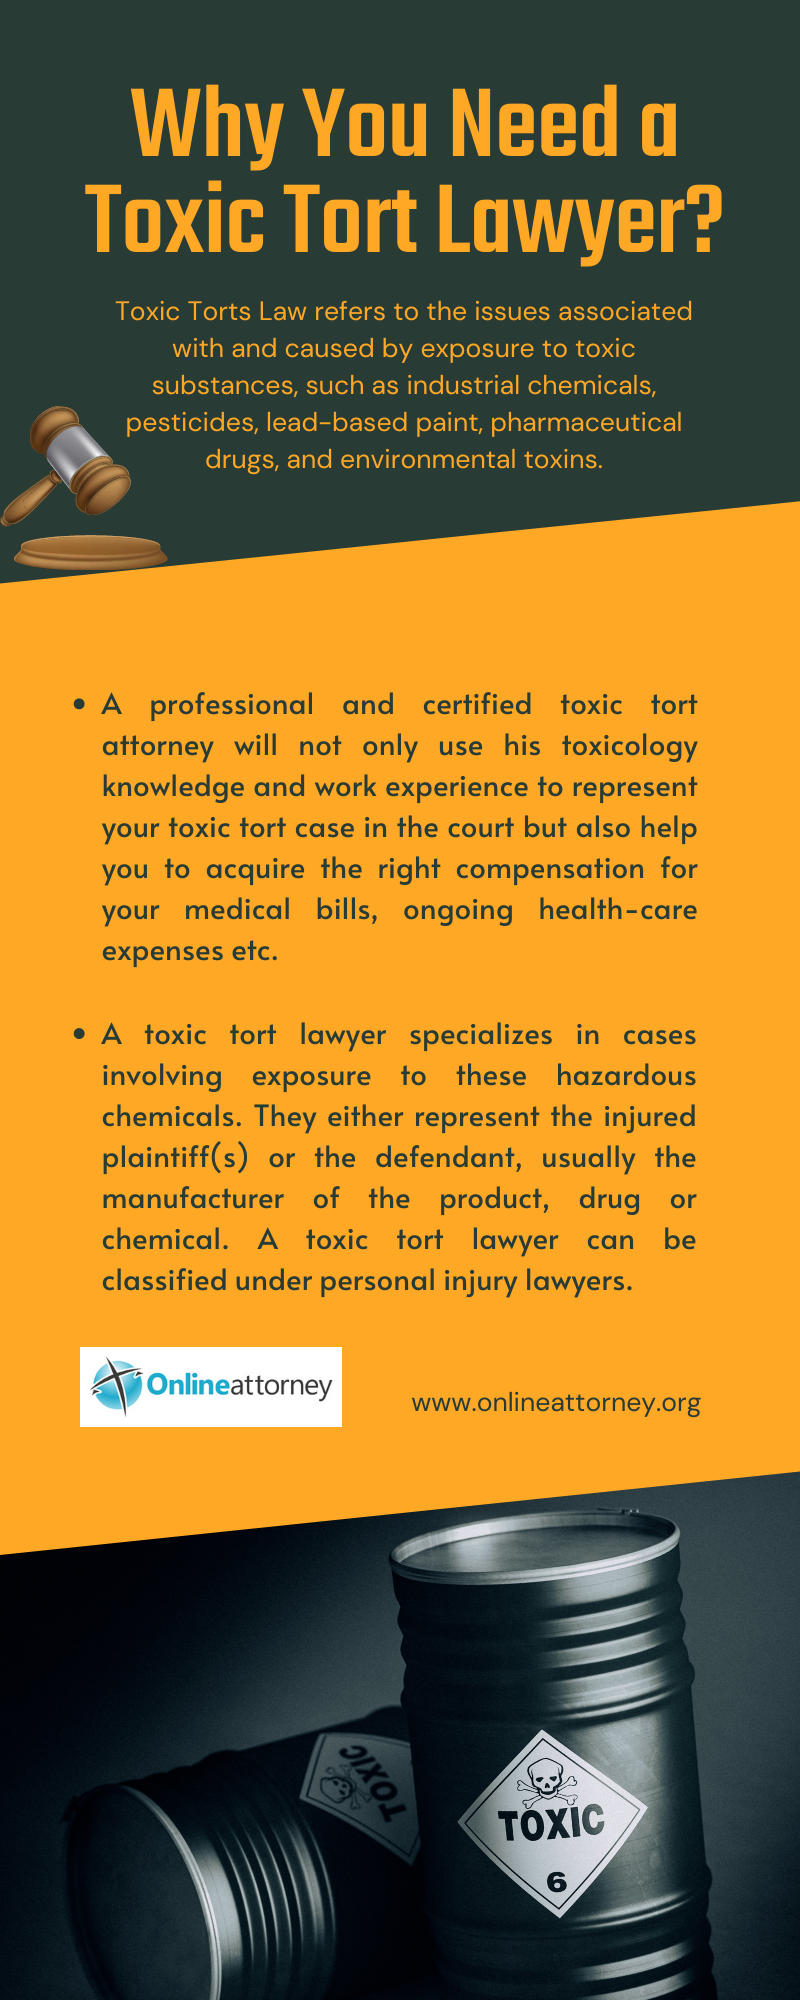 Why You Need a Toxic Tort Lawyer